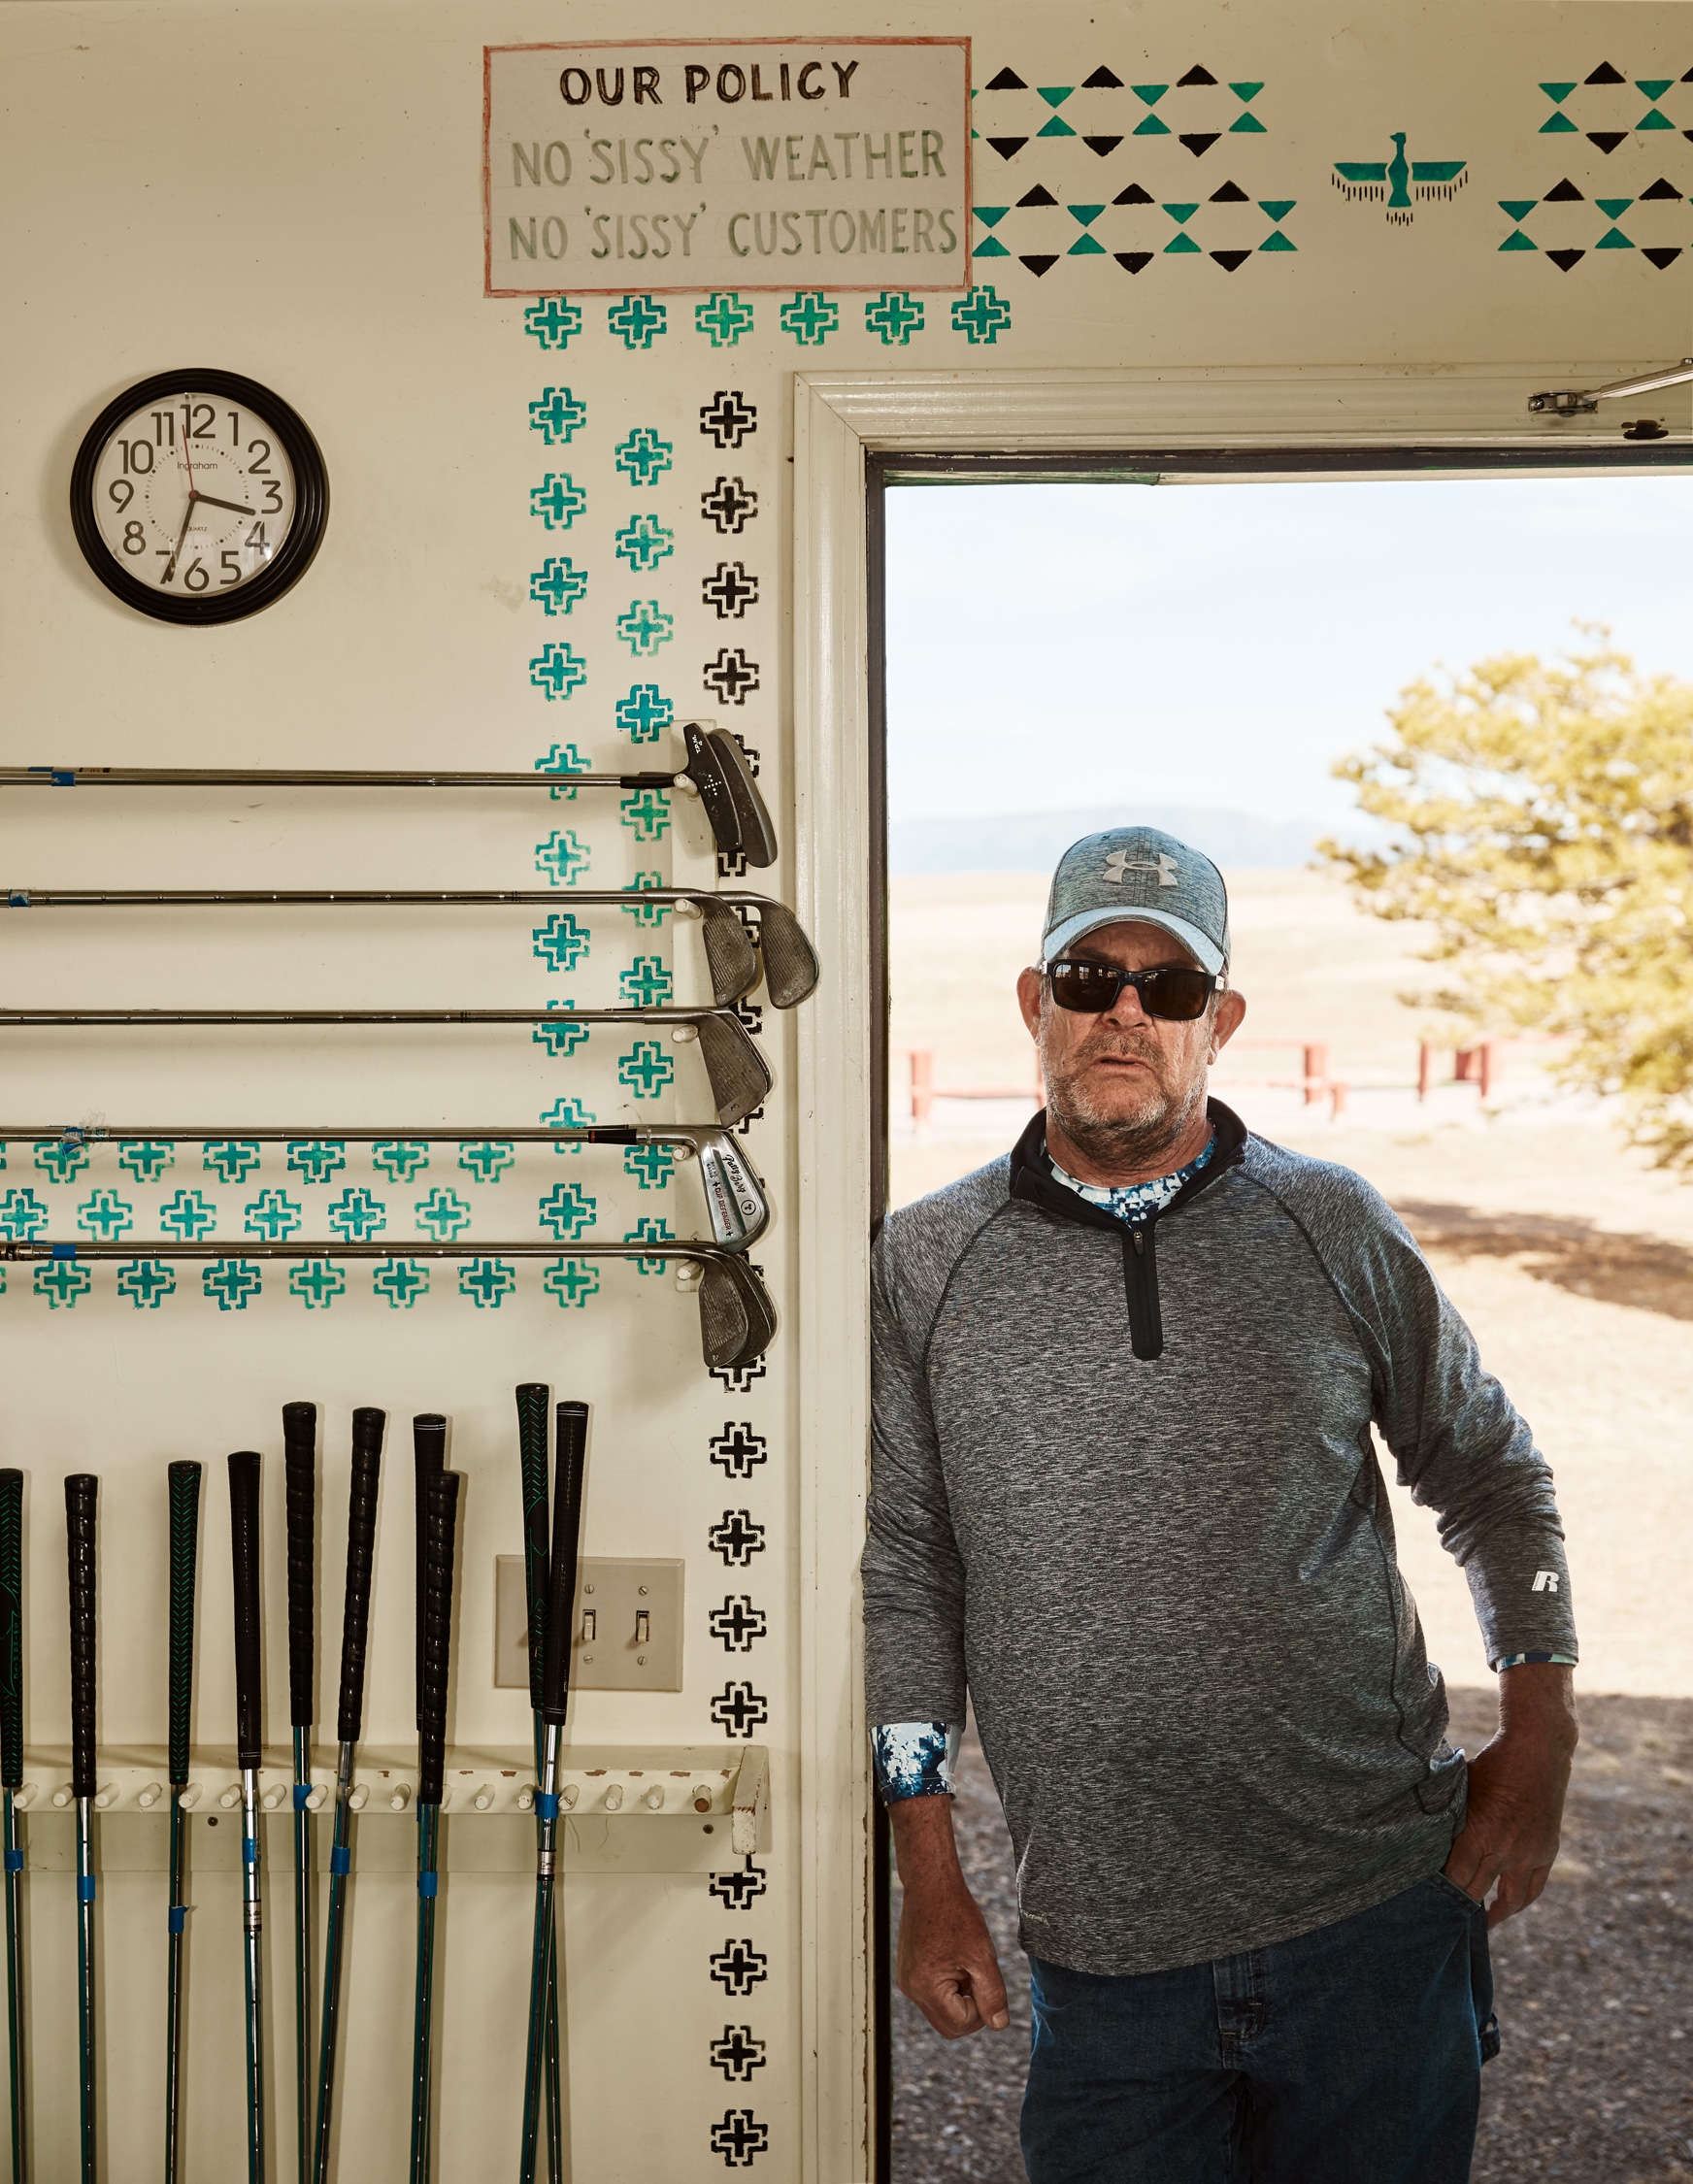 Chino Valley Golf Range - Stephen Denton - Los Angeles, California Based Commercial Photographer